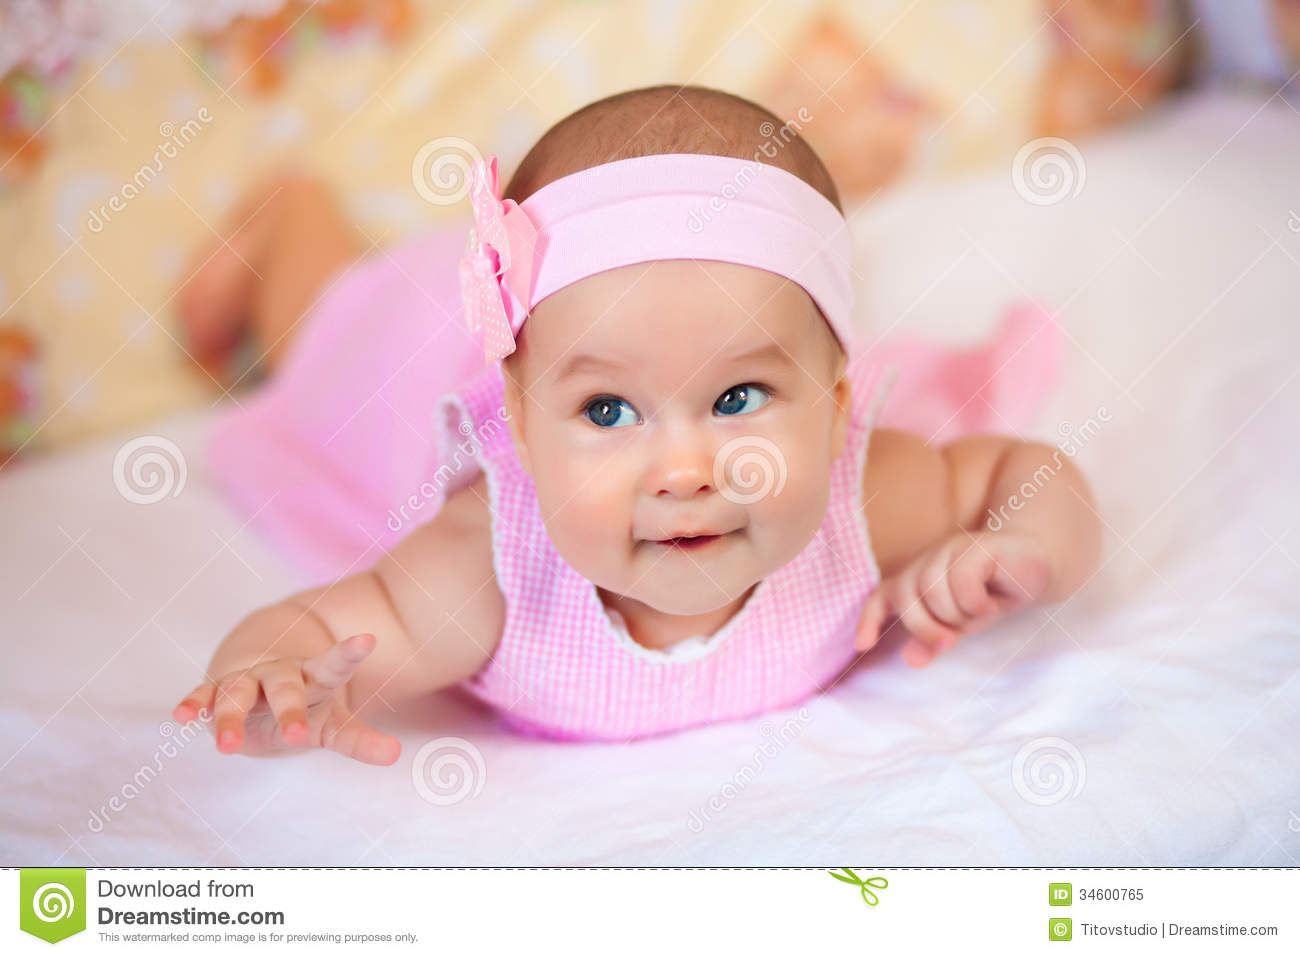 Funny Baby Girl In A Pink Dress Royalty Free Stock Photo ... Funny Baby Girl